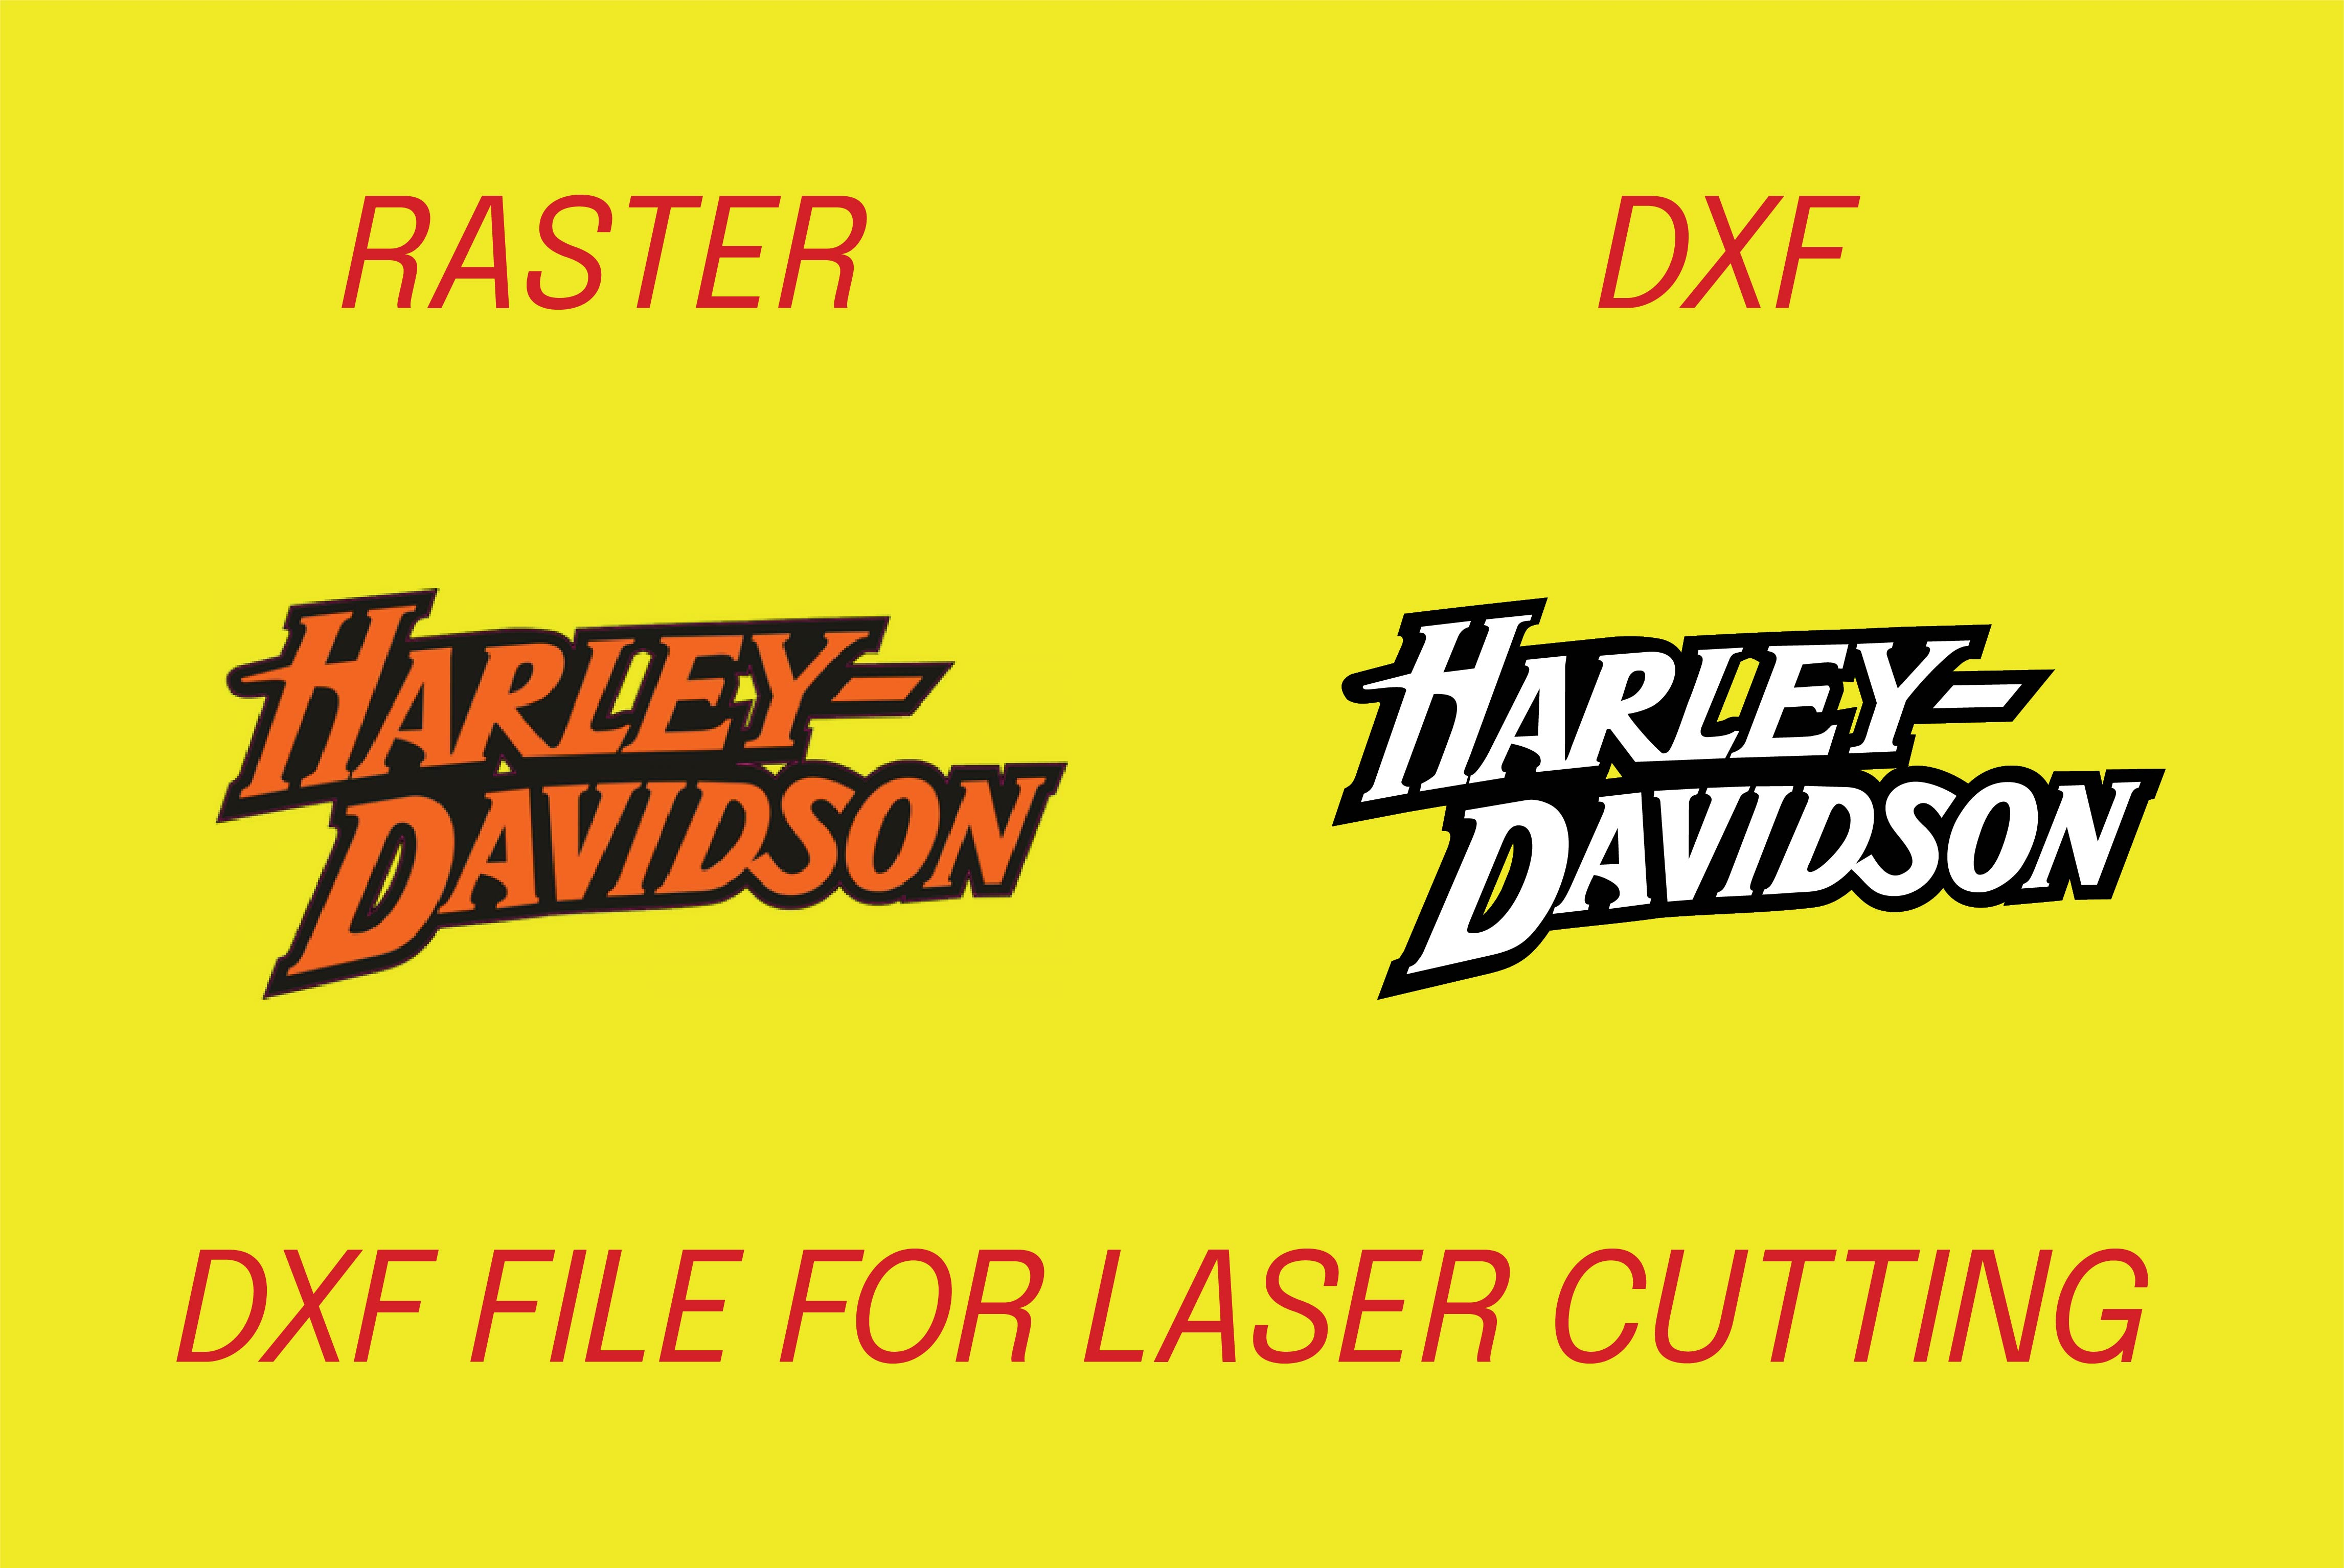 I will convert file into dxf for laser cutting